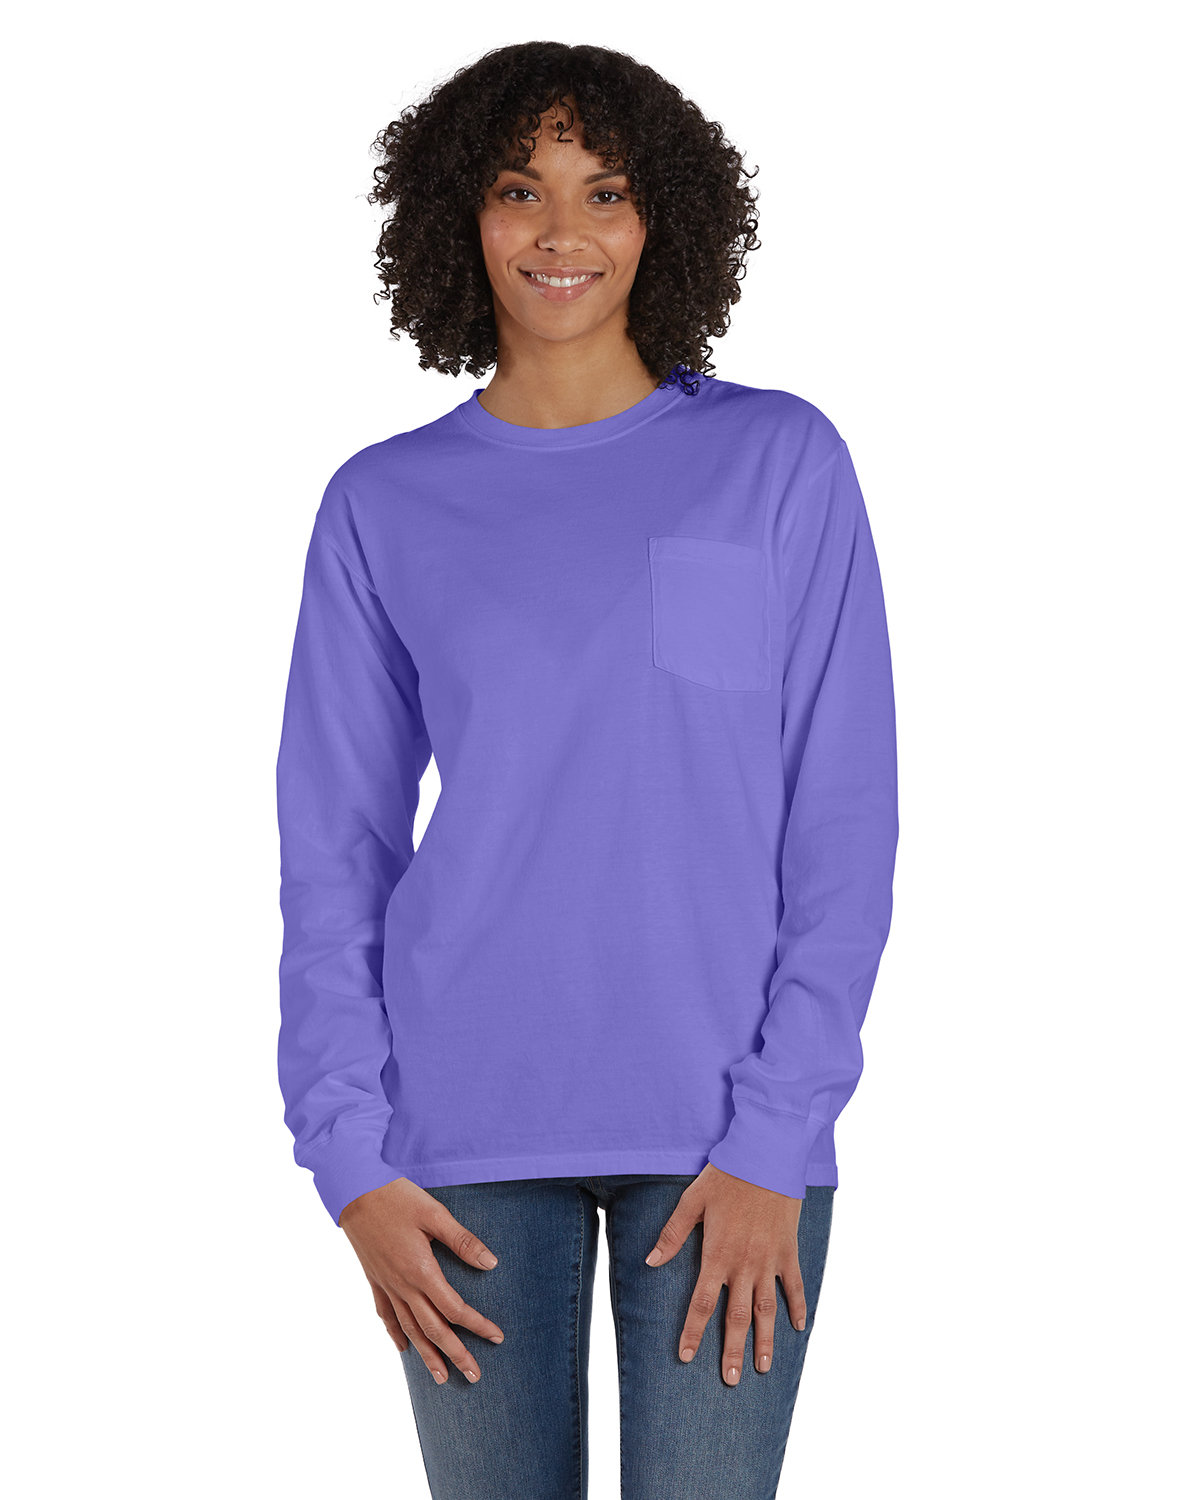 ComfortWash by Hanes Unisex Garment-Dyed Long-Sleeve T-Shirt with Pocket LAVENDER